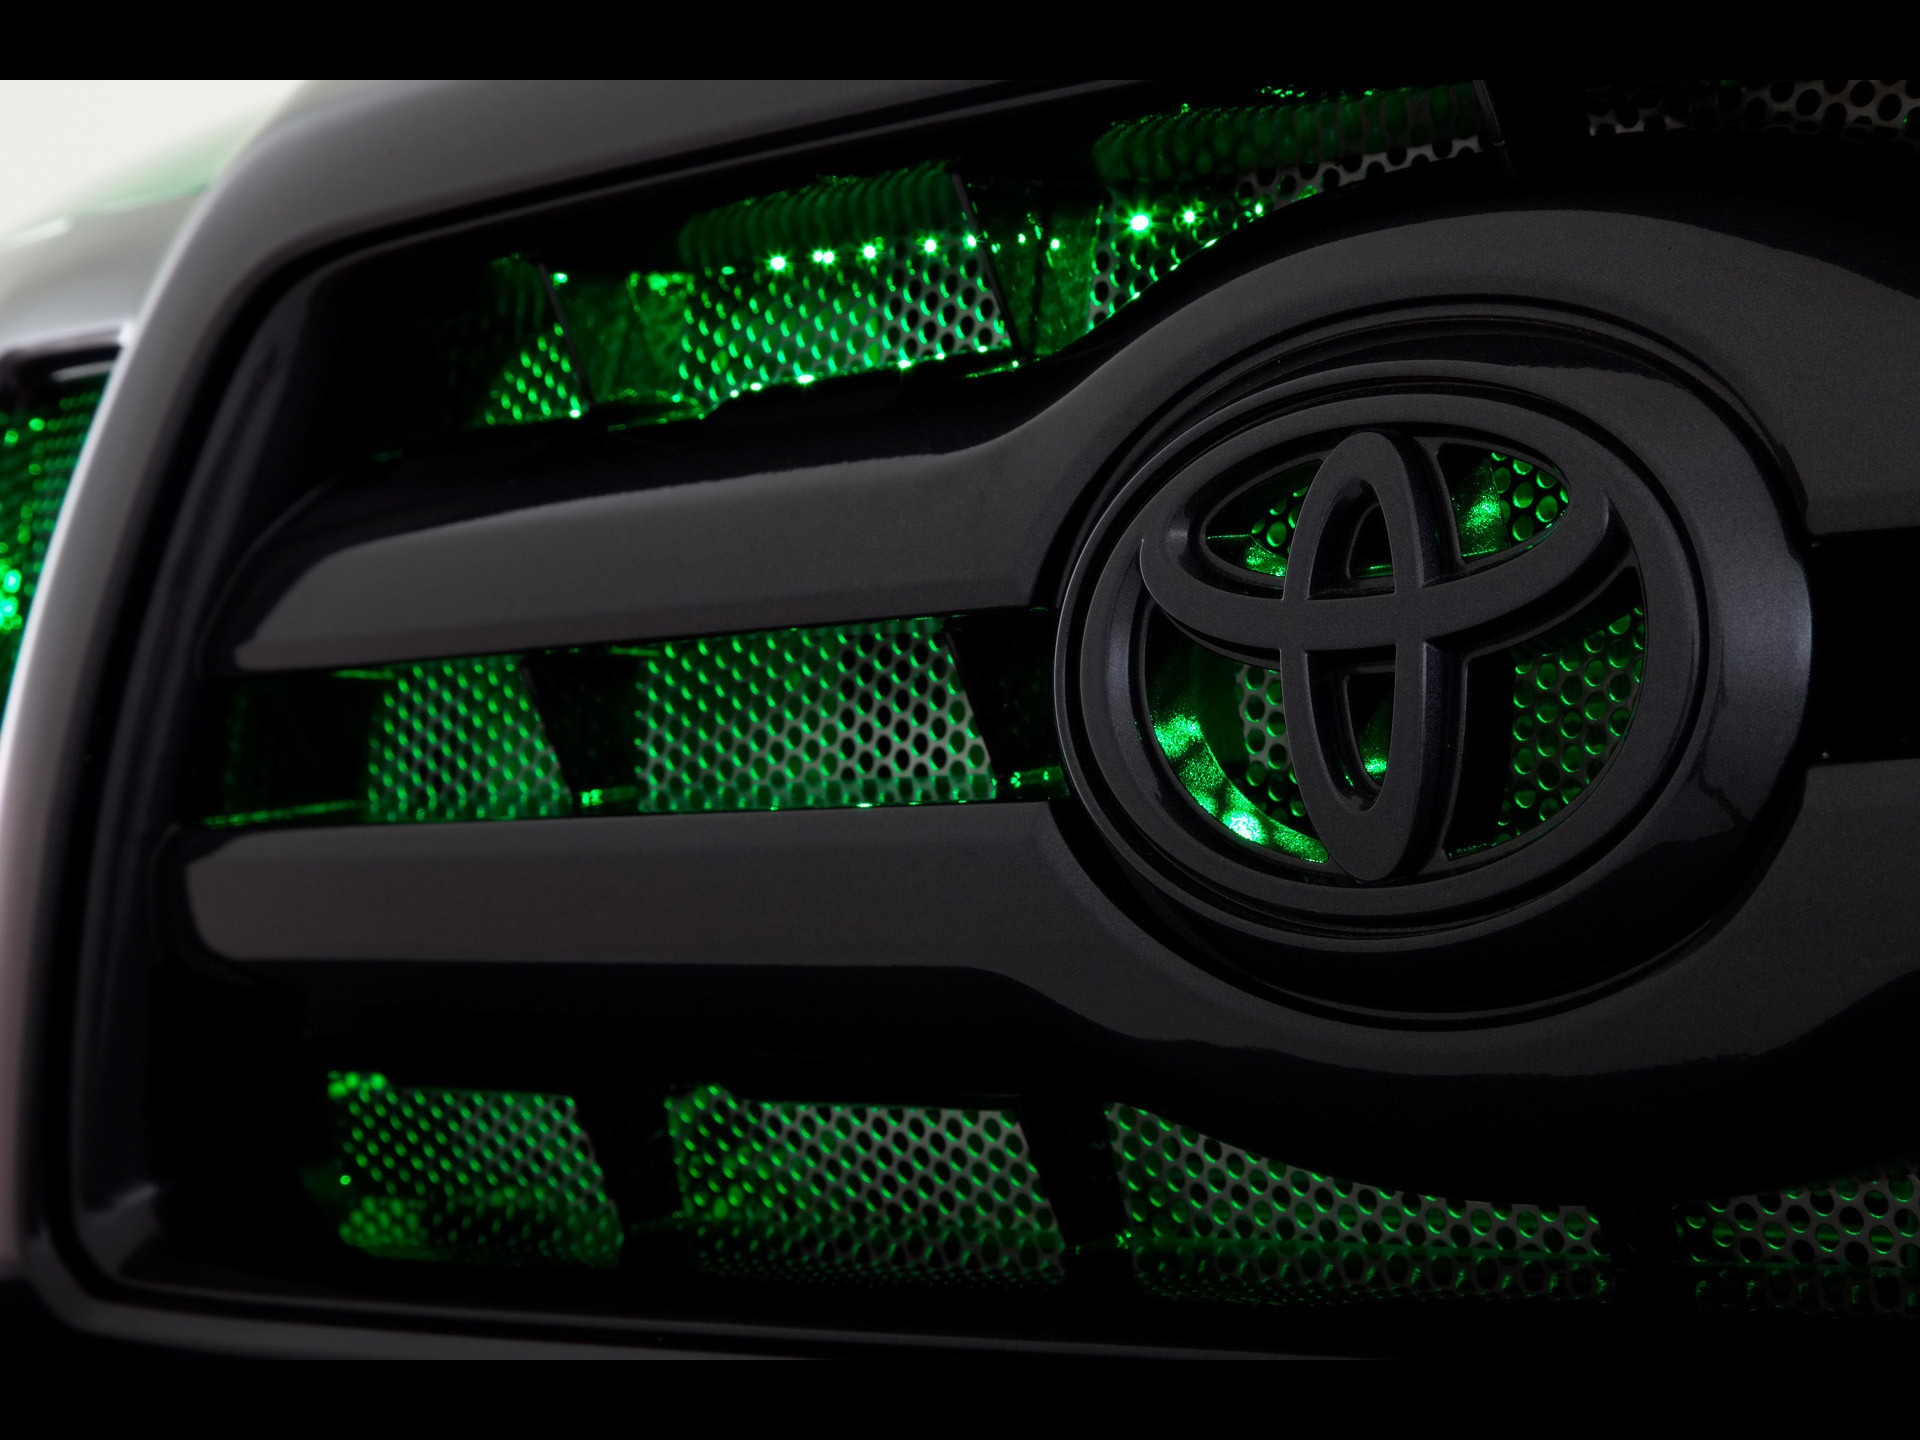 2009 Toyota Tacoma Atg Grille Wallpaper